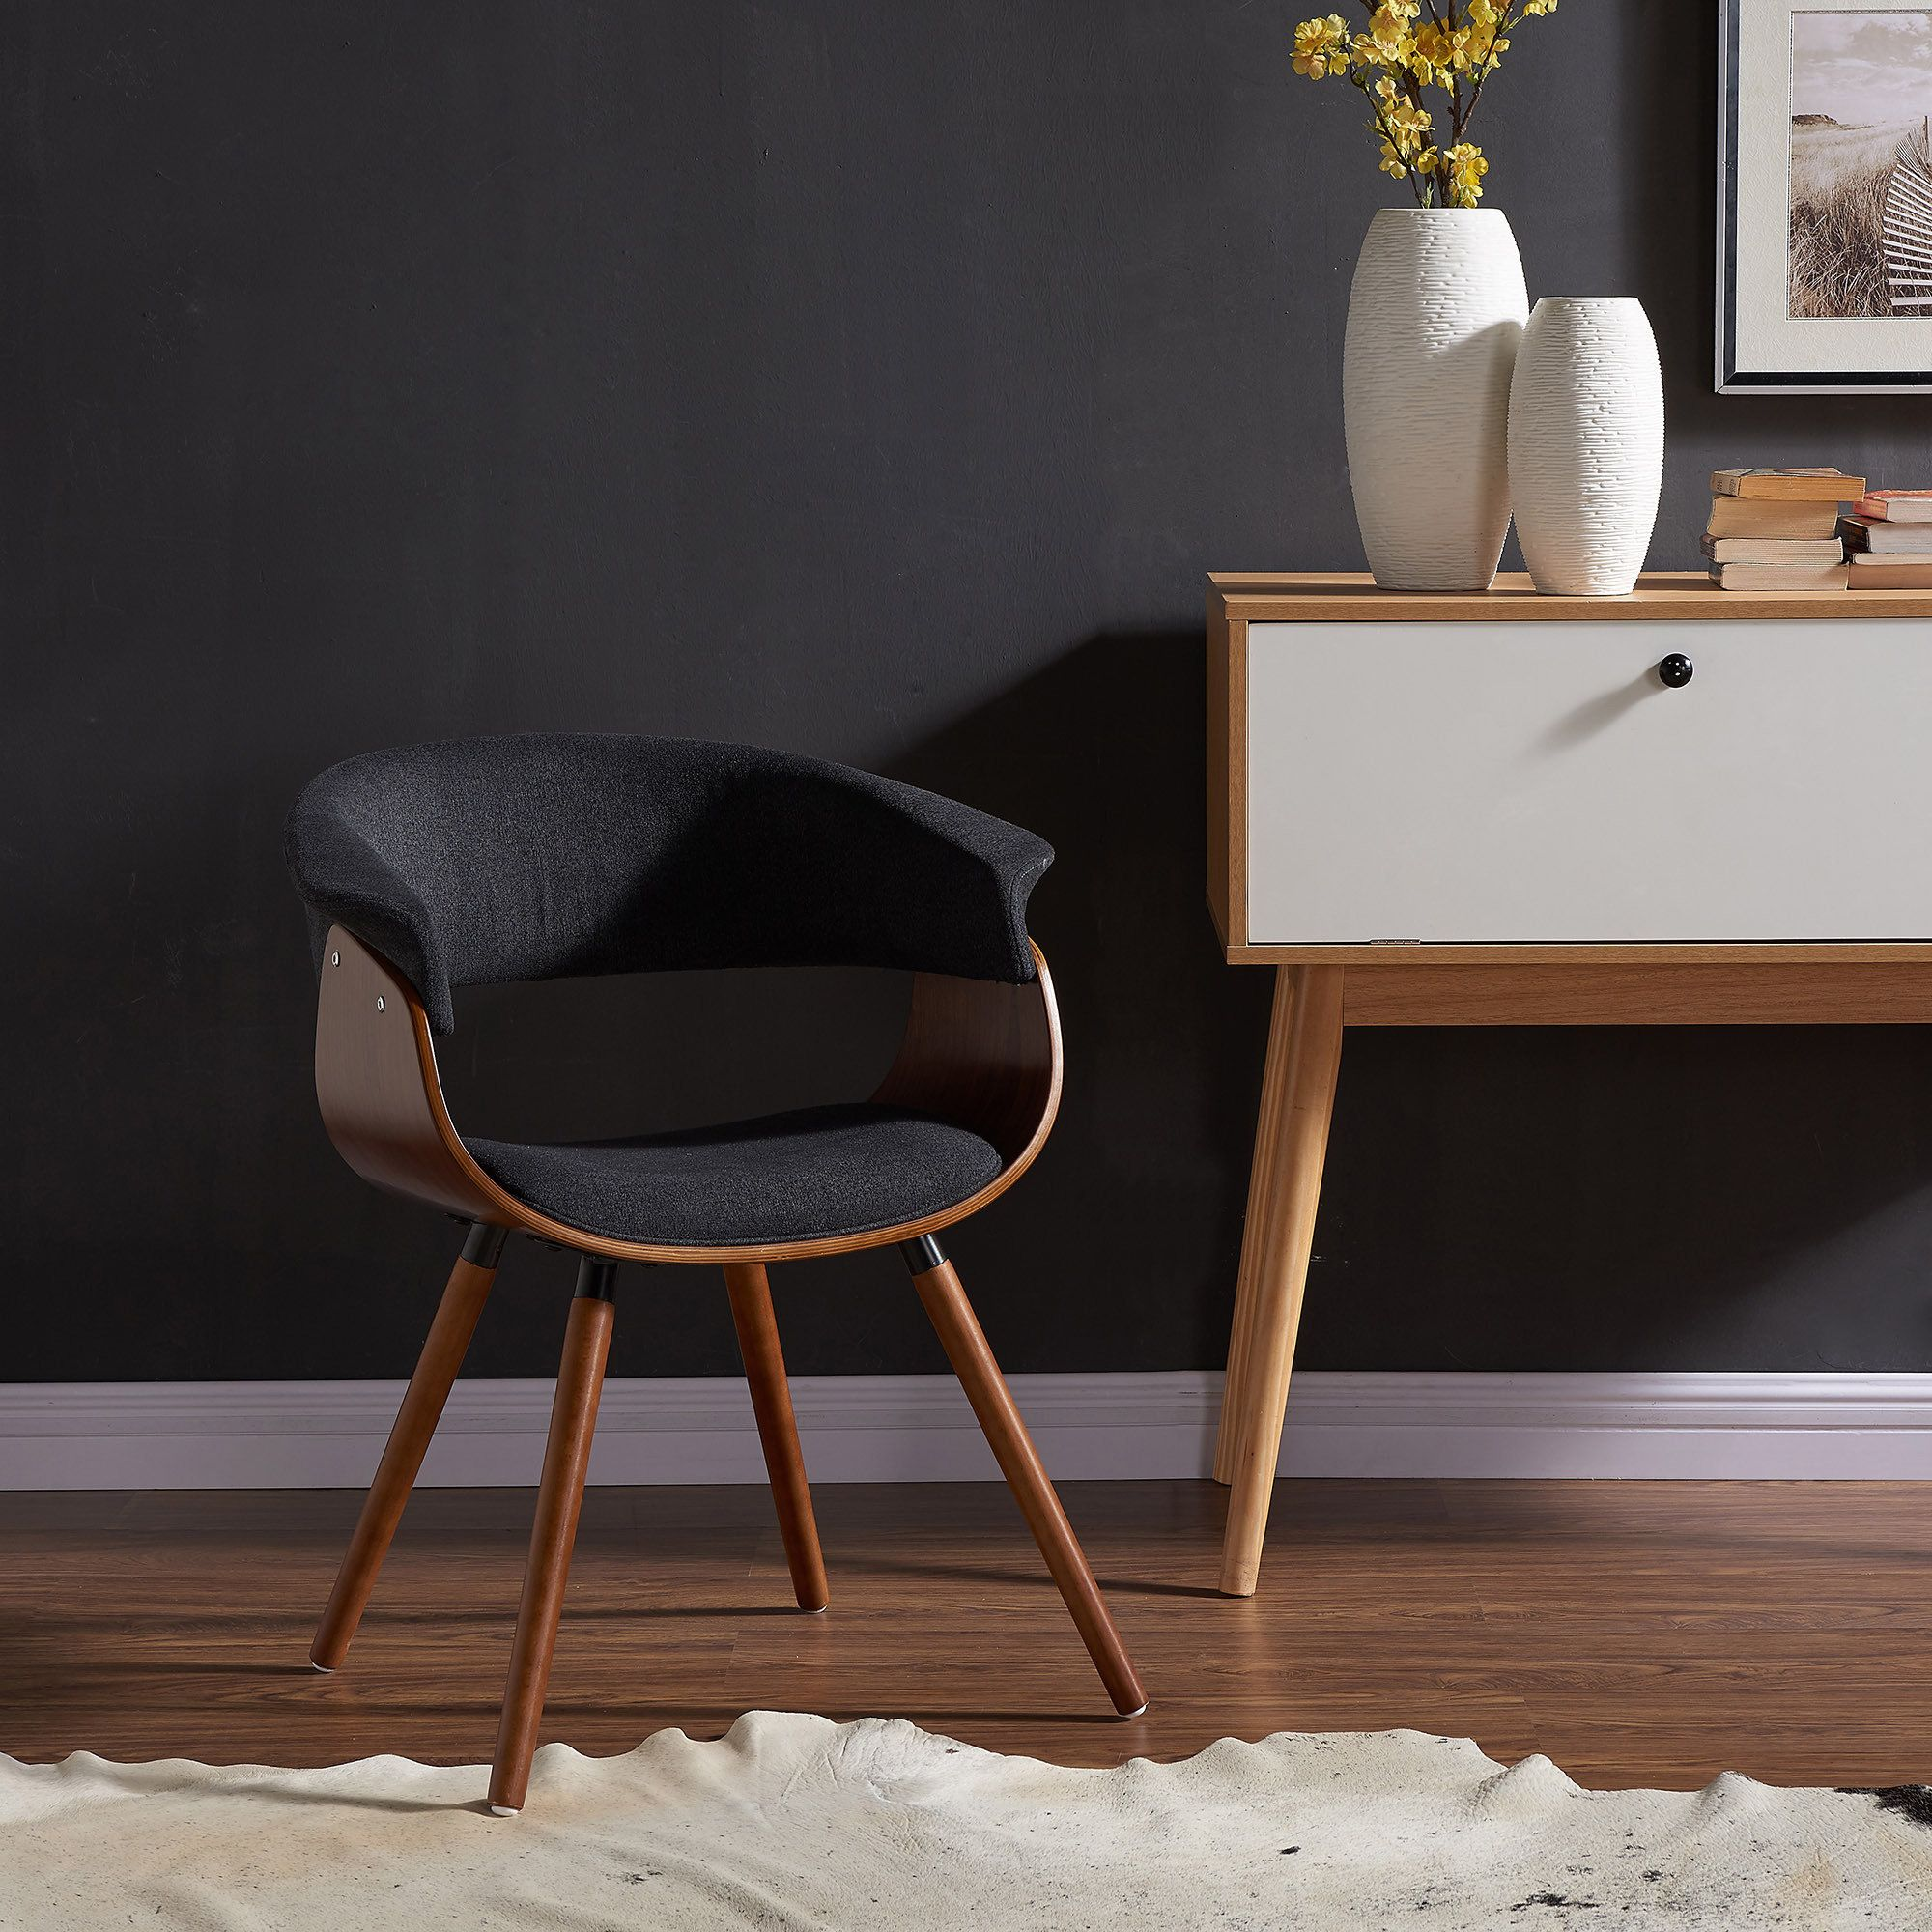 Living Room Furniture: Free Shipping On Orders Over $45! Find The Perfect  Balance Between Part 54